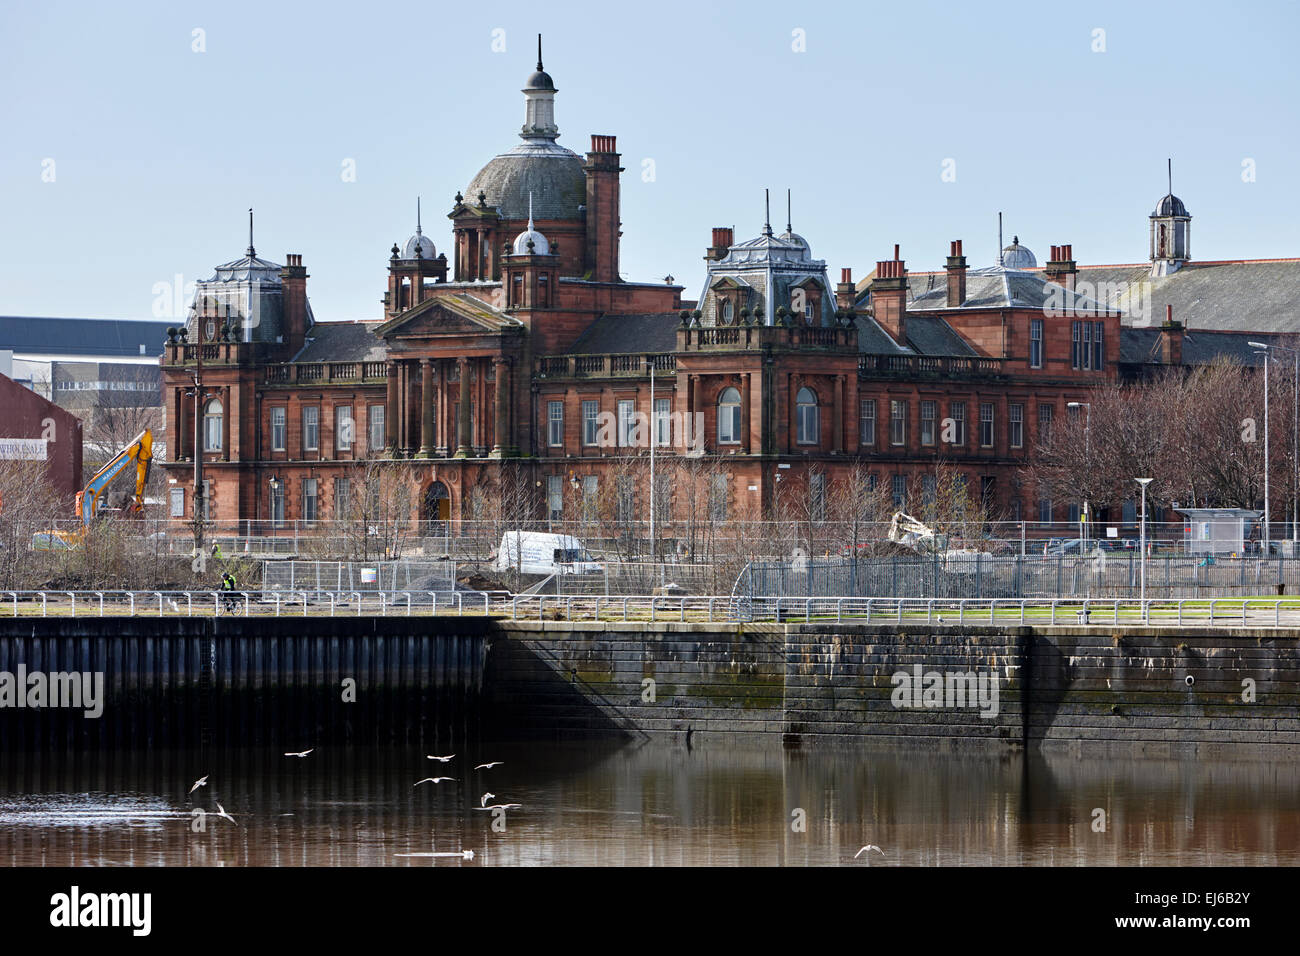 Govan burgh town hall now film city Glasgow Scotland uk - Stock Image